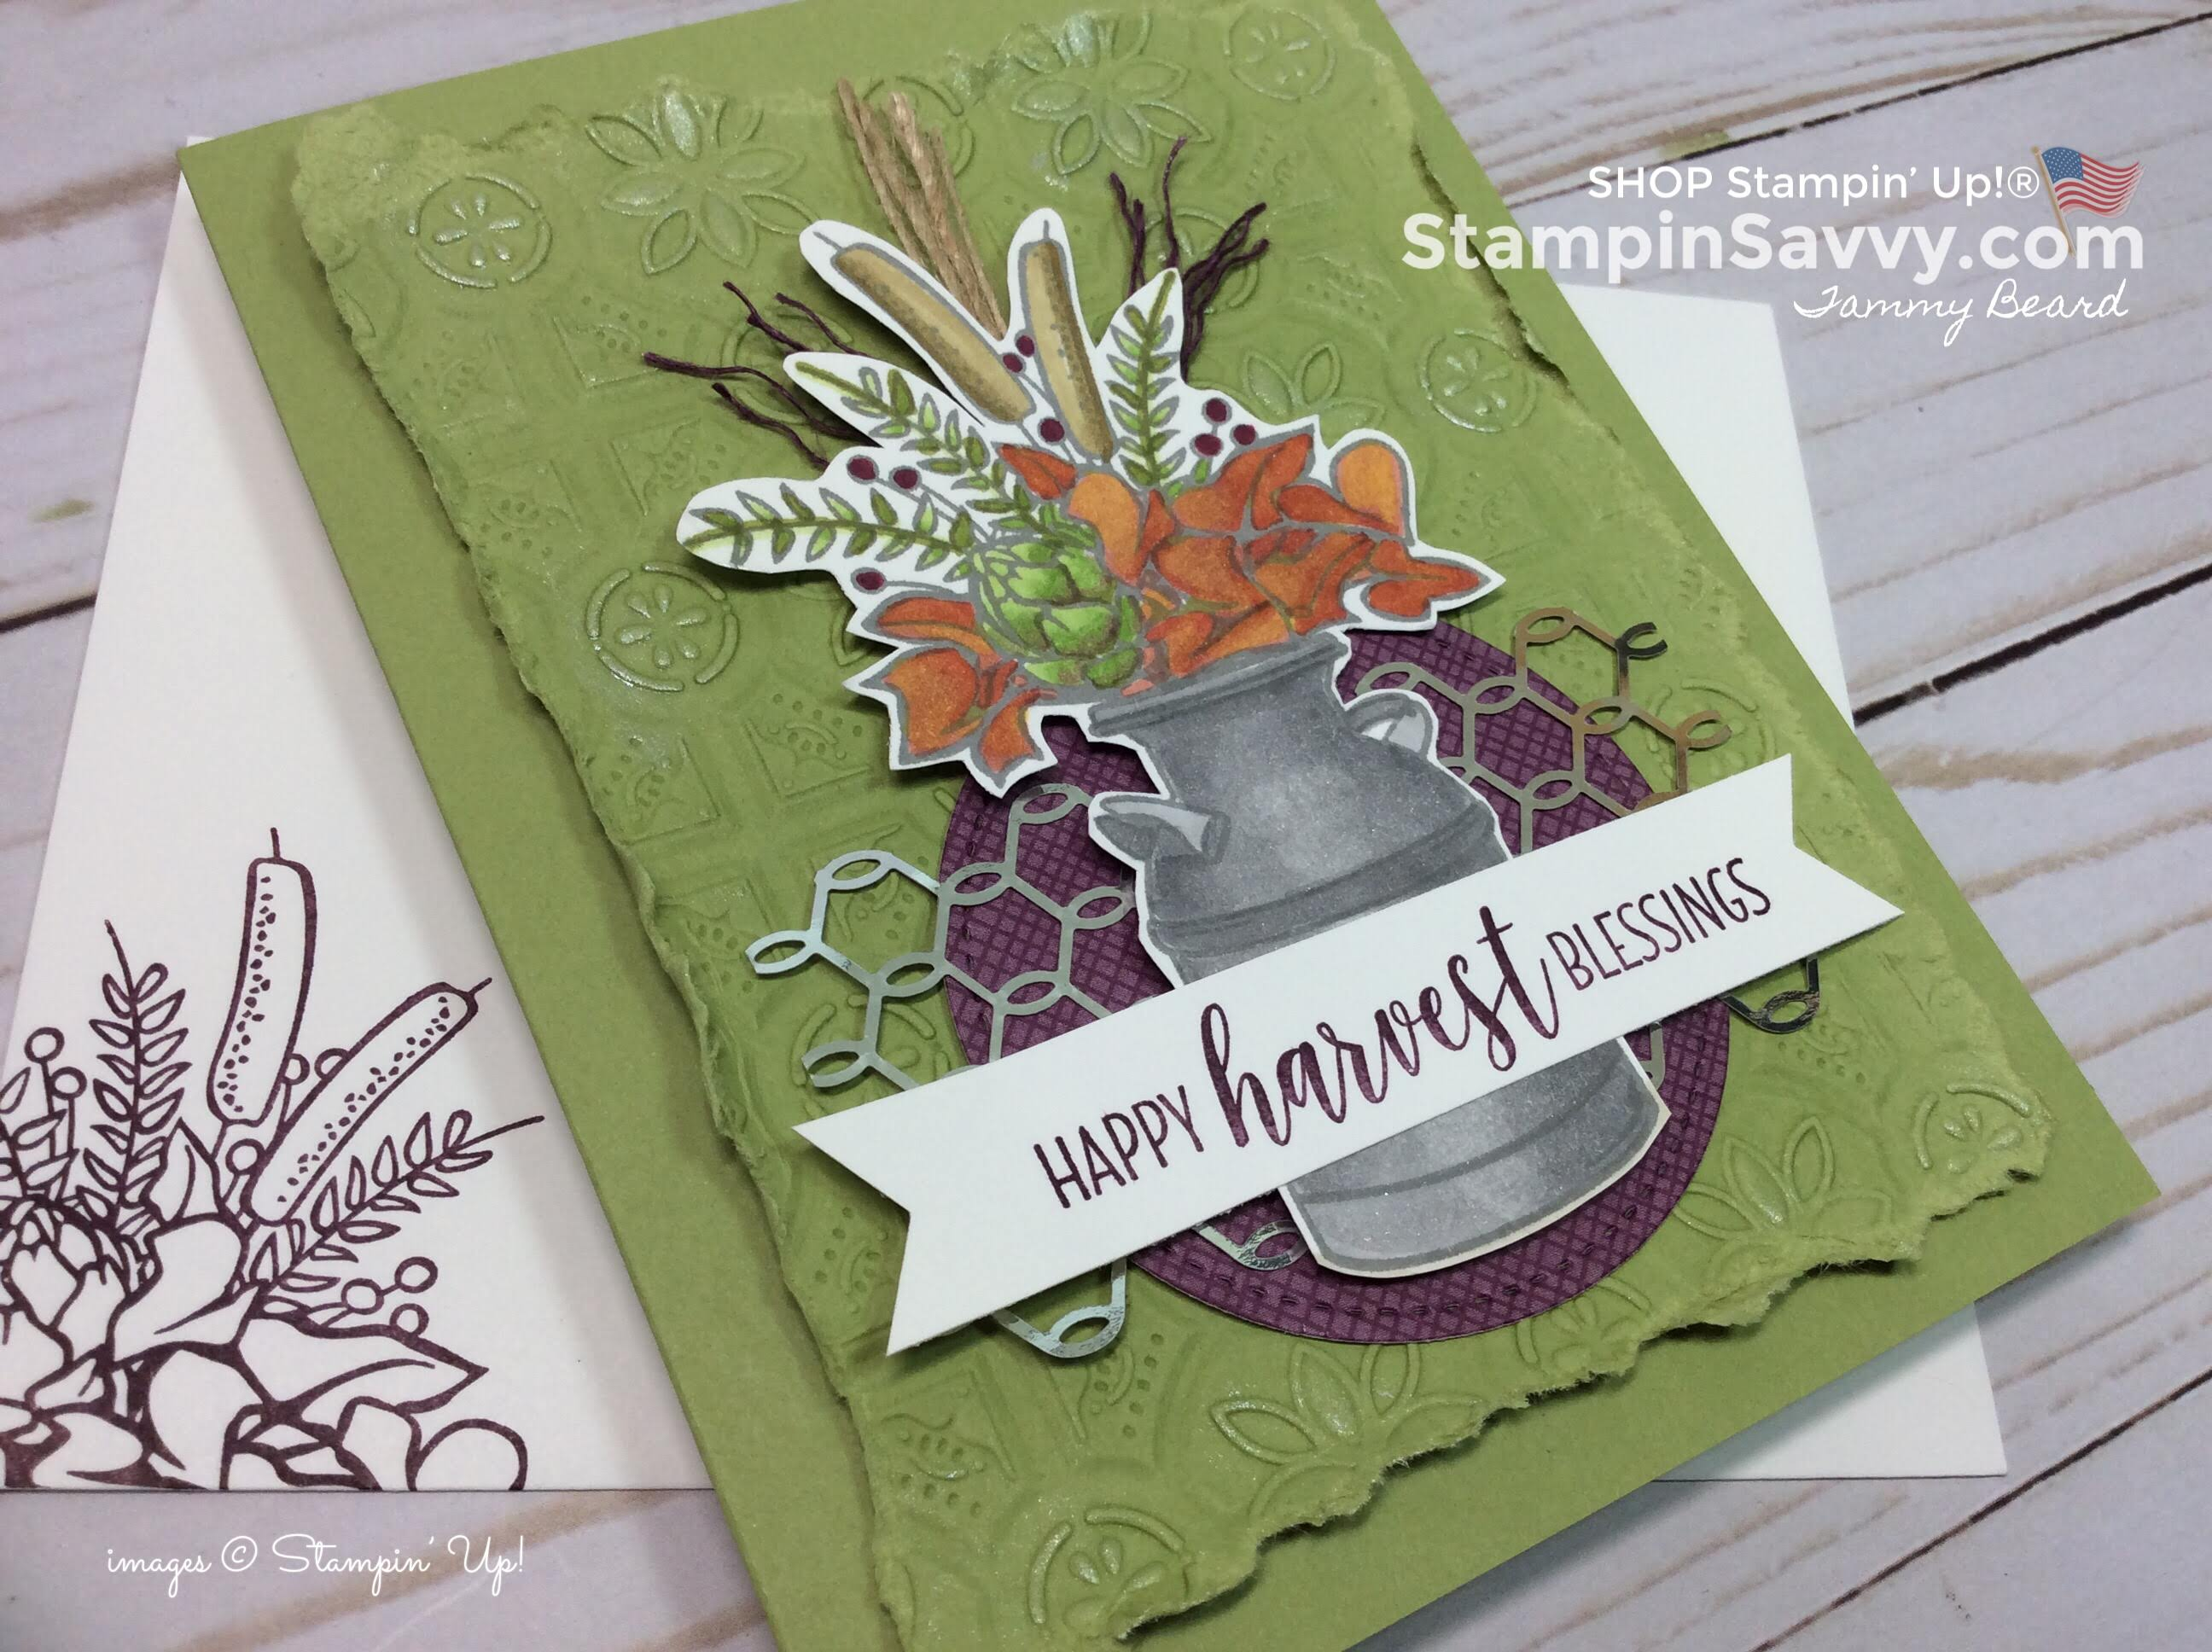 country lane suite, stampin up, happy harvest blessings close-up, card ideas, stampinup, stampin savvy, tammy beard